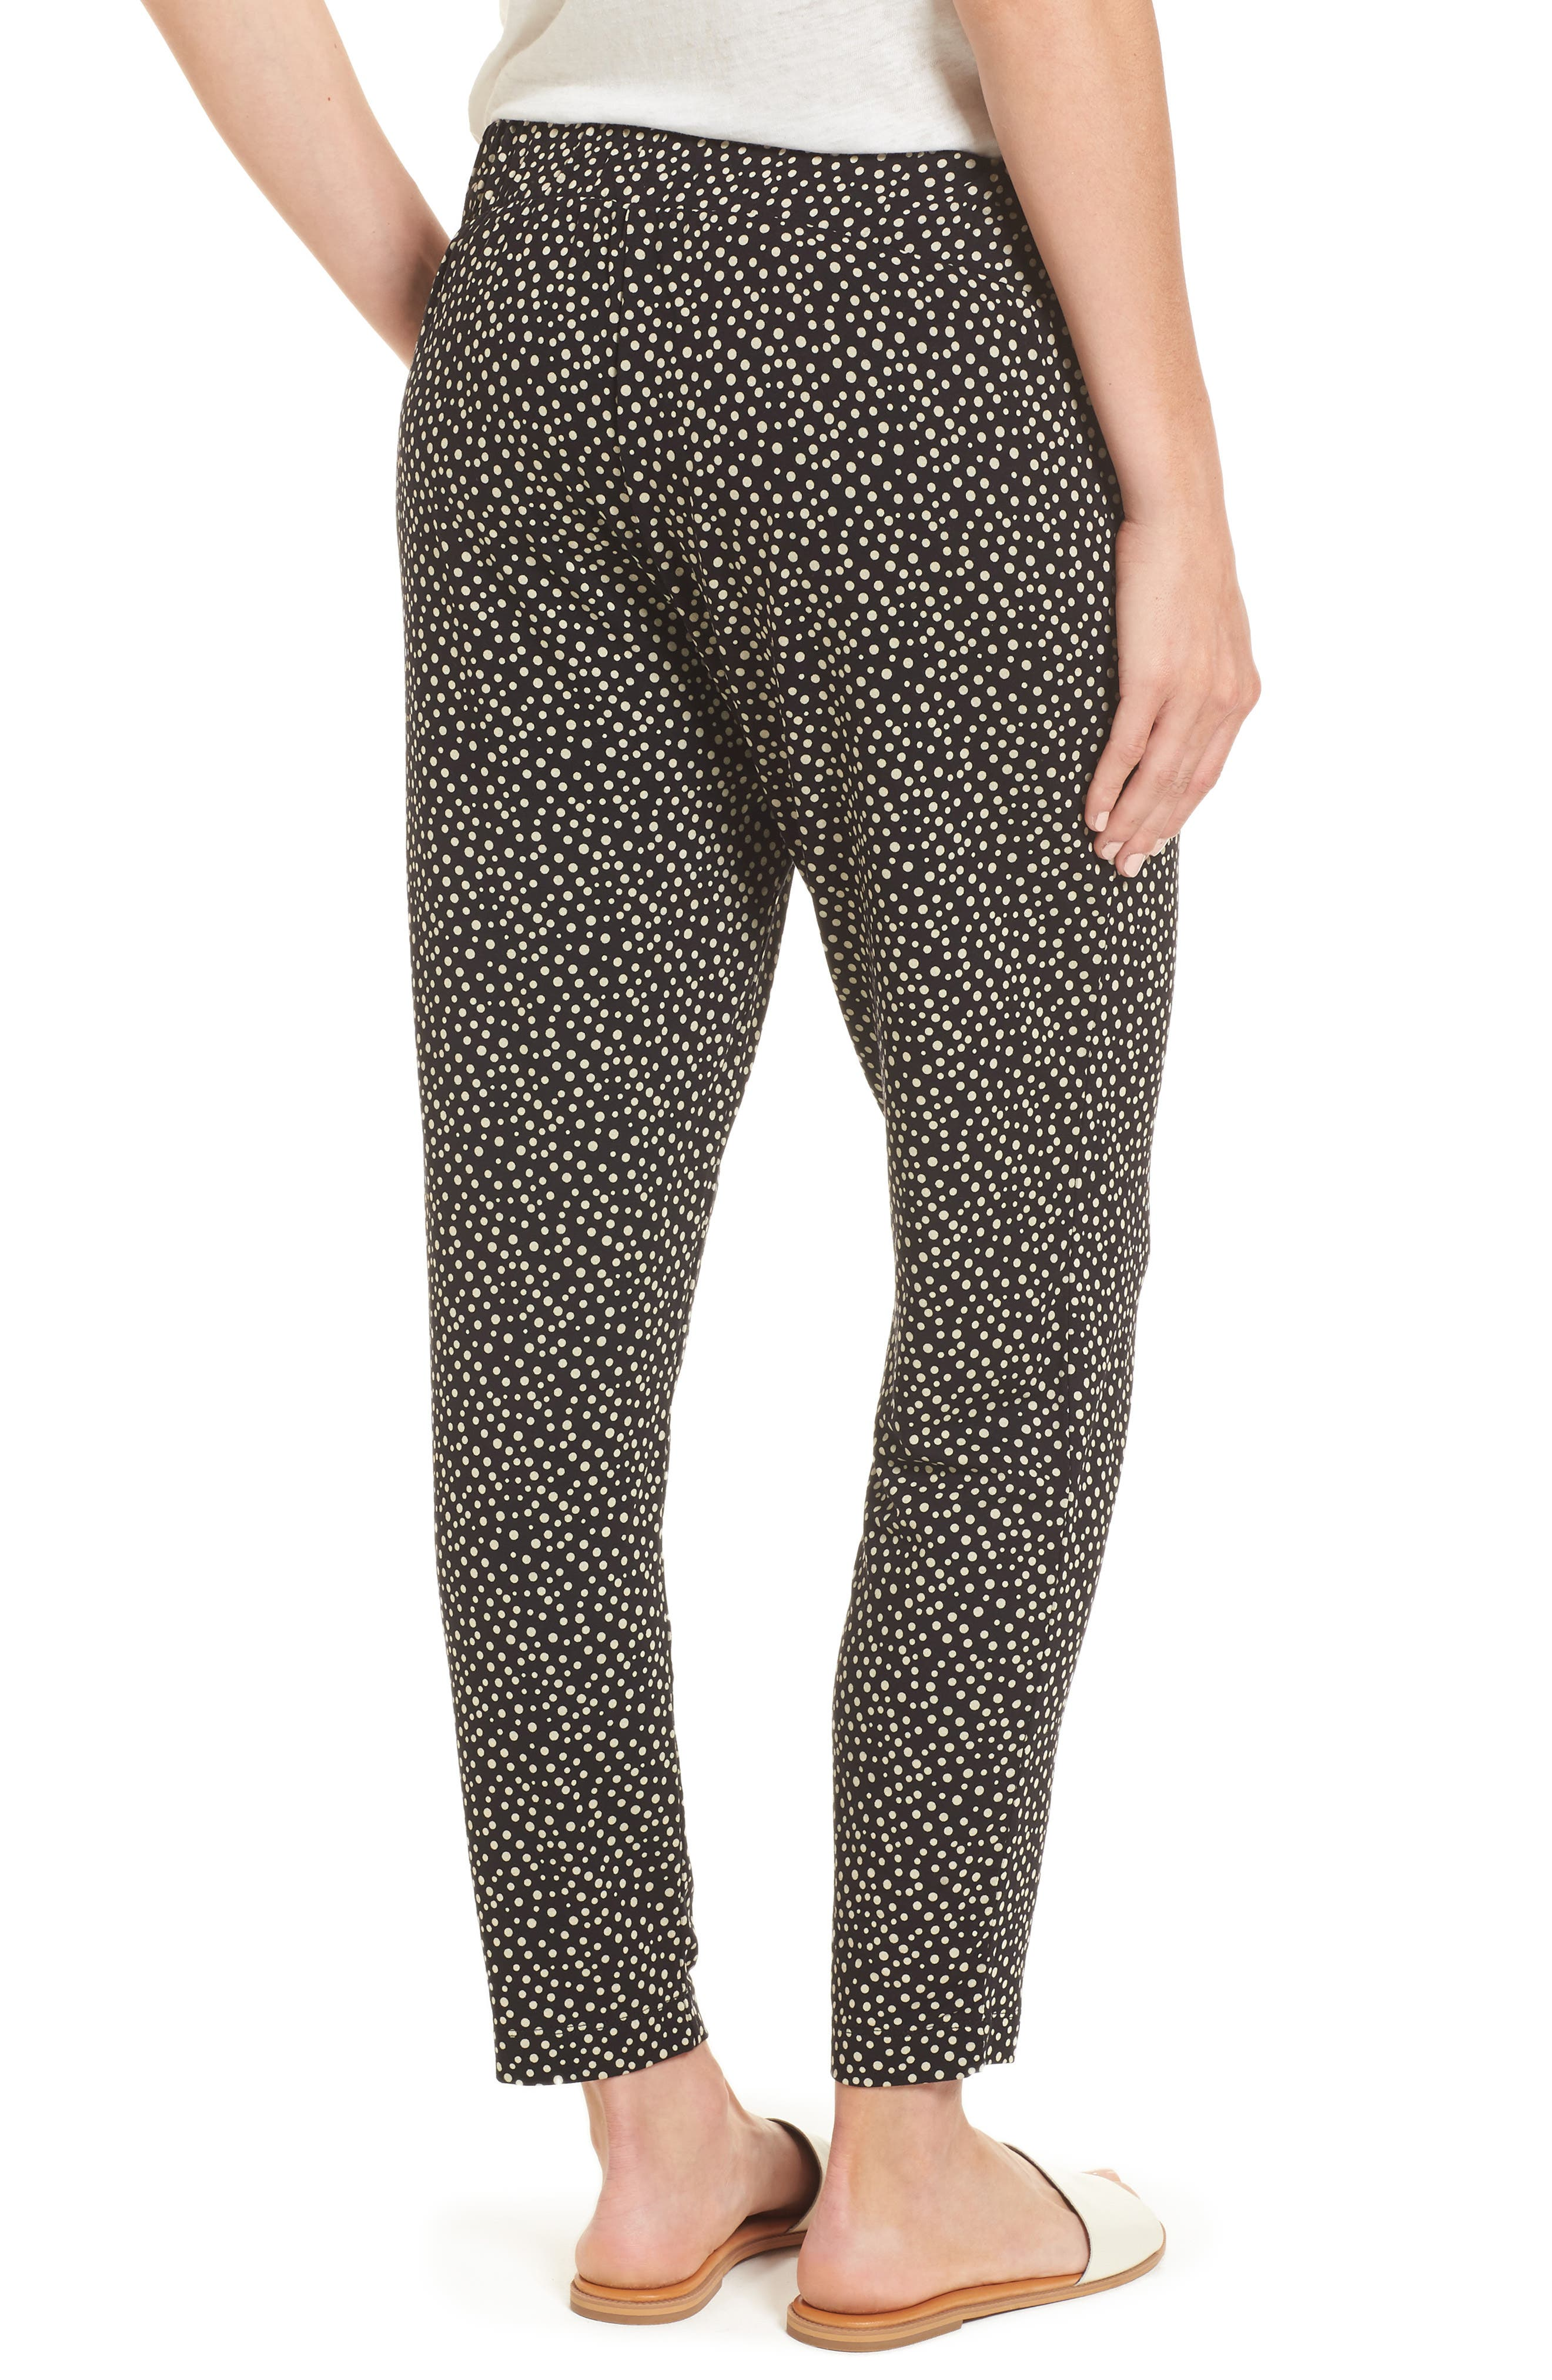 Danni Maternity Tapered Trousers,                             Alternate thumbnail 2, color,                             Polka Print